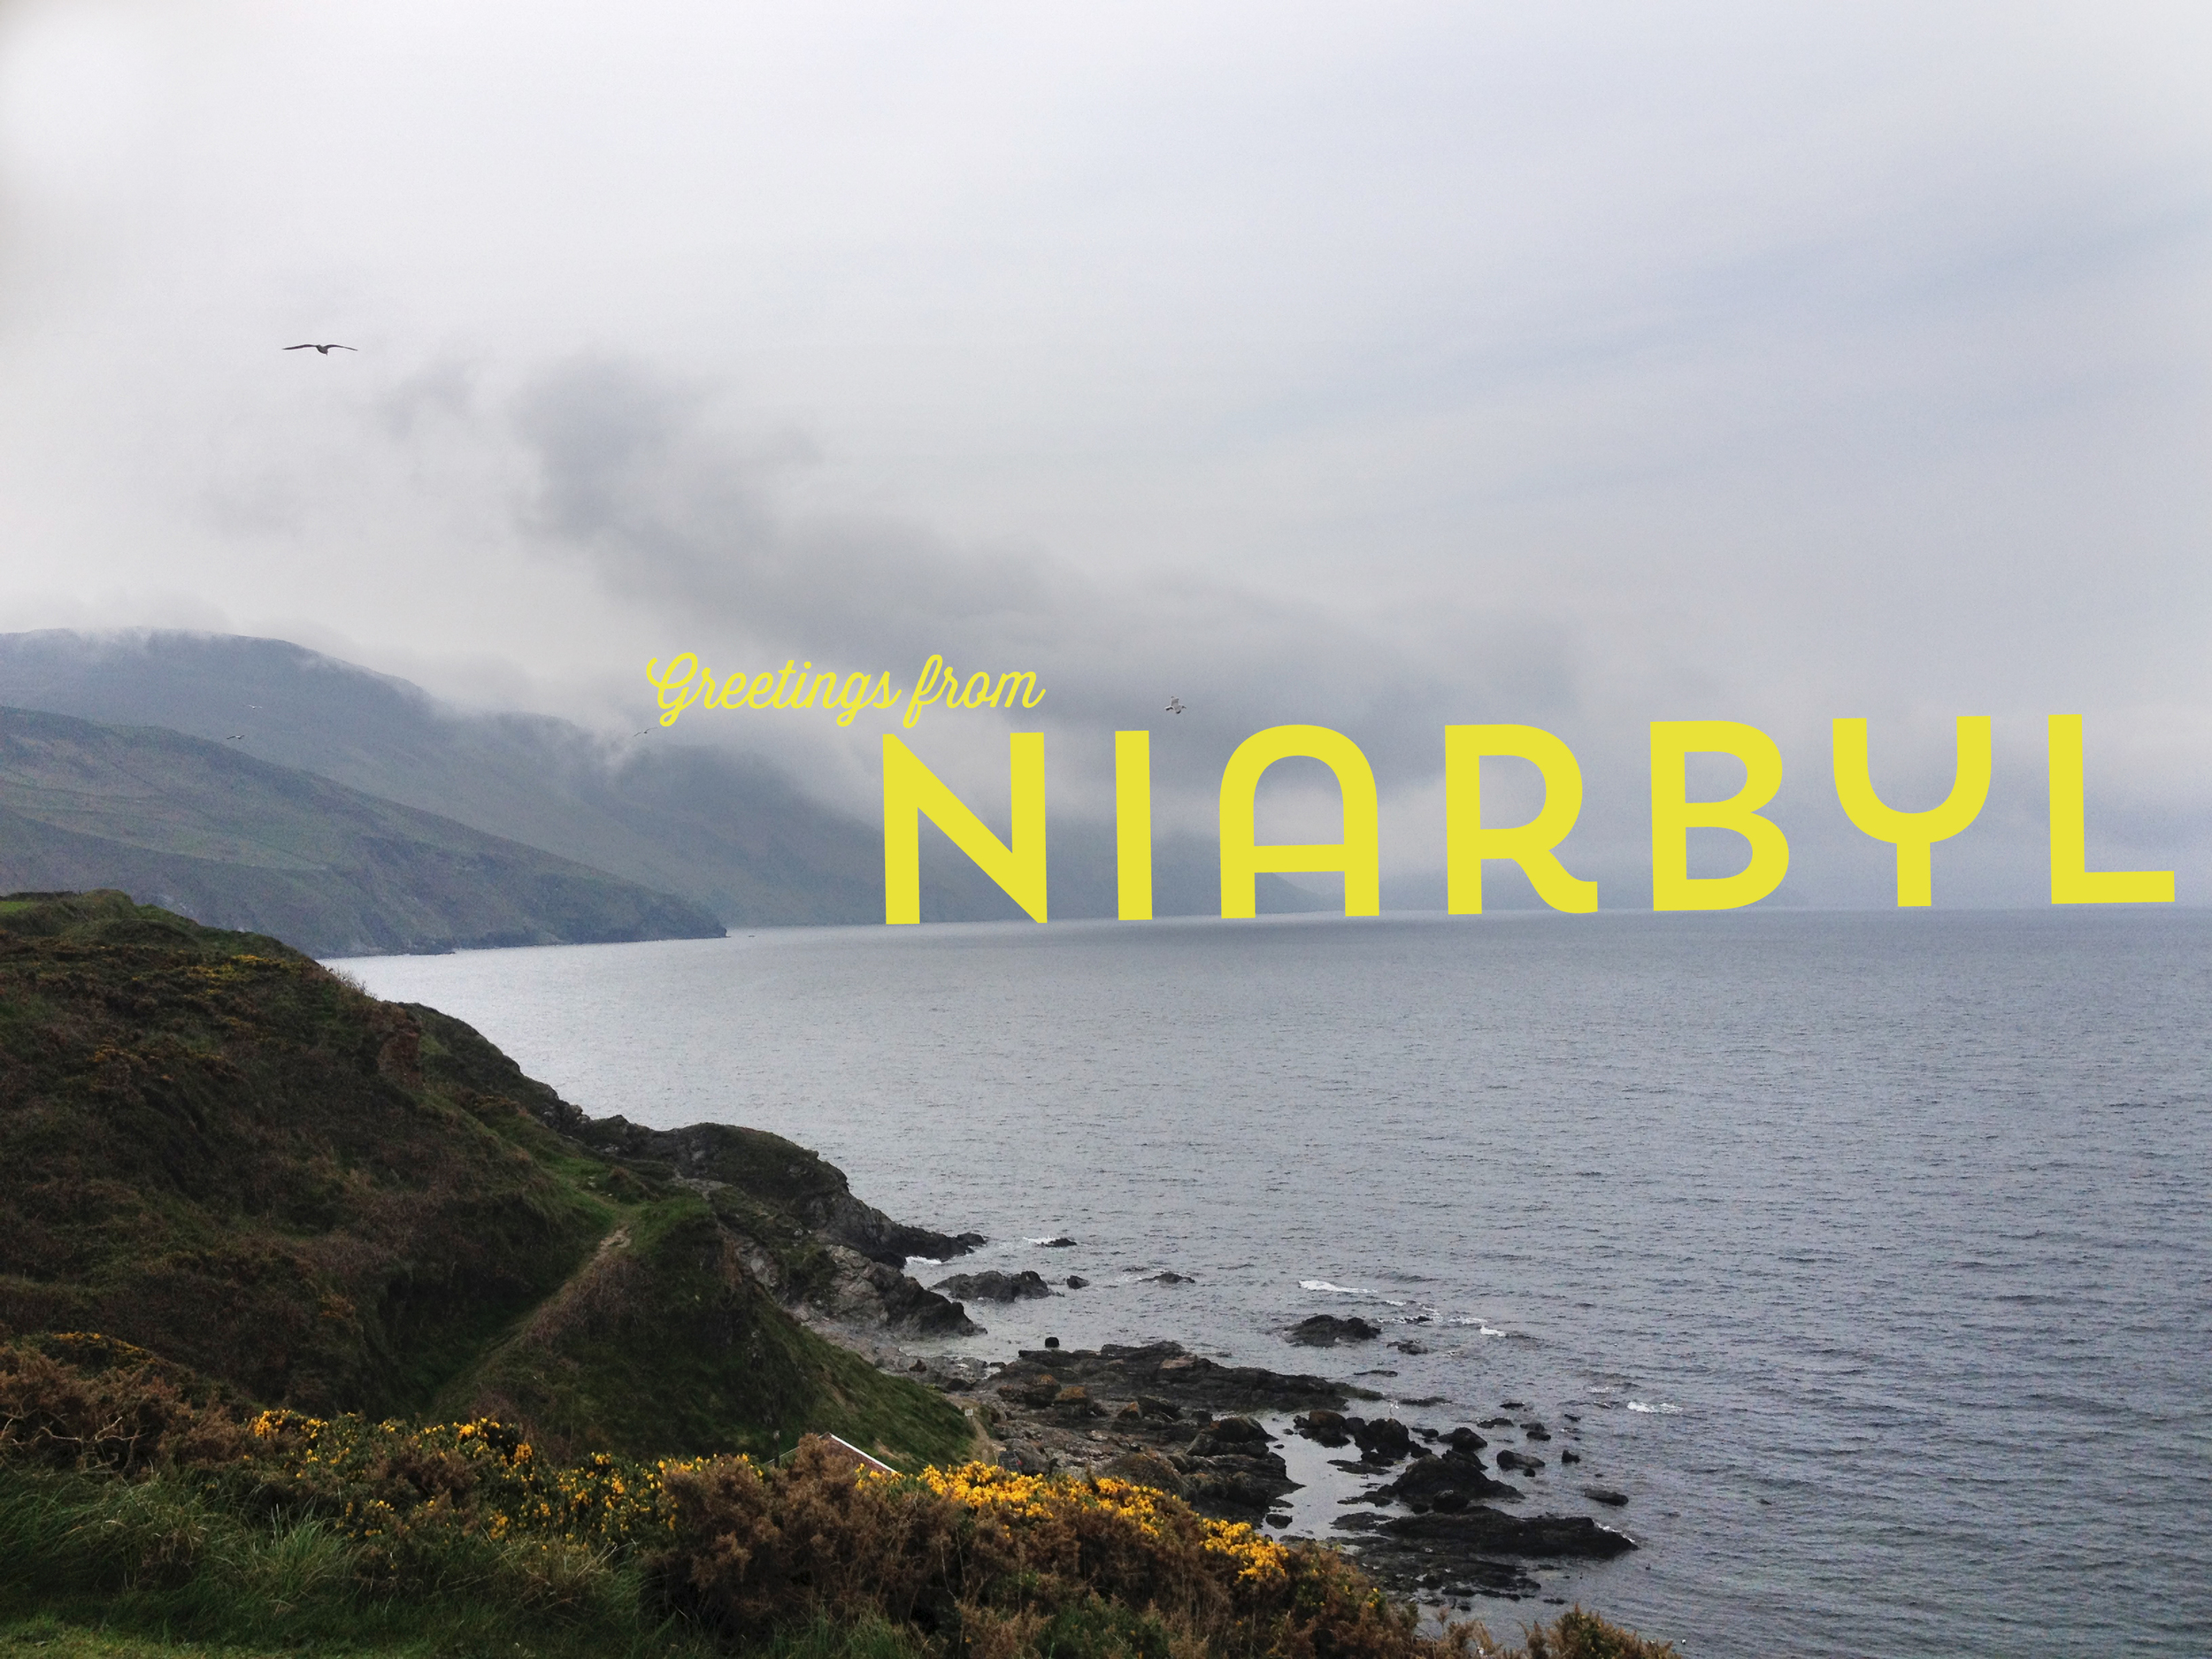 Another (less sunny) view of Niarbyl.